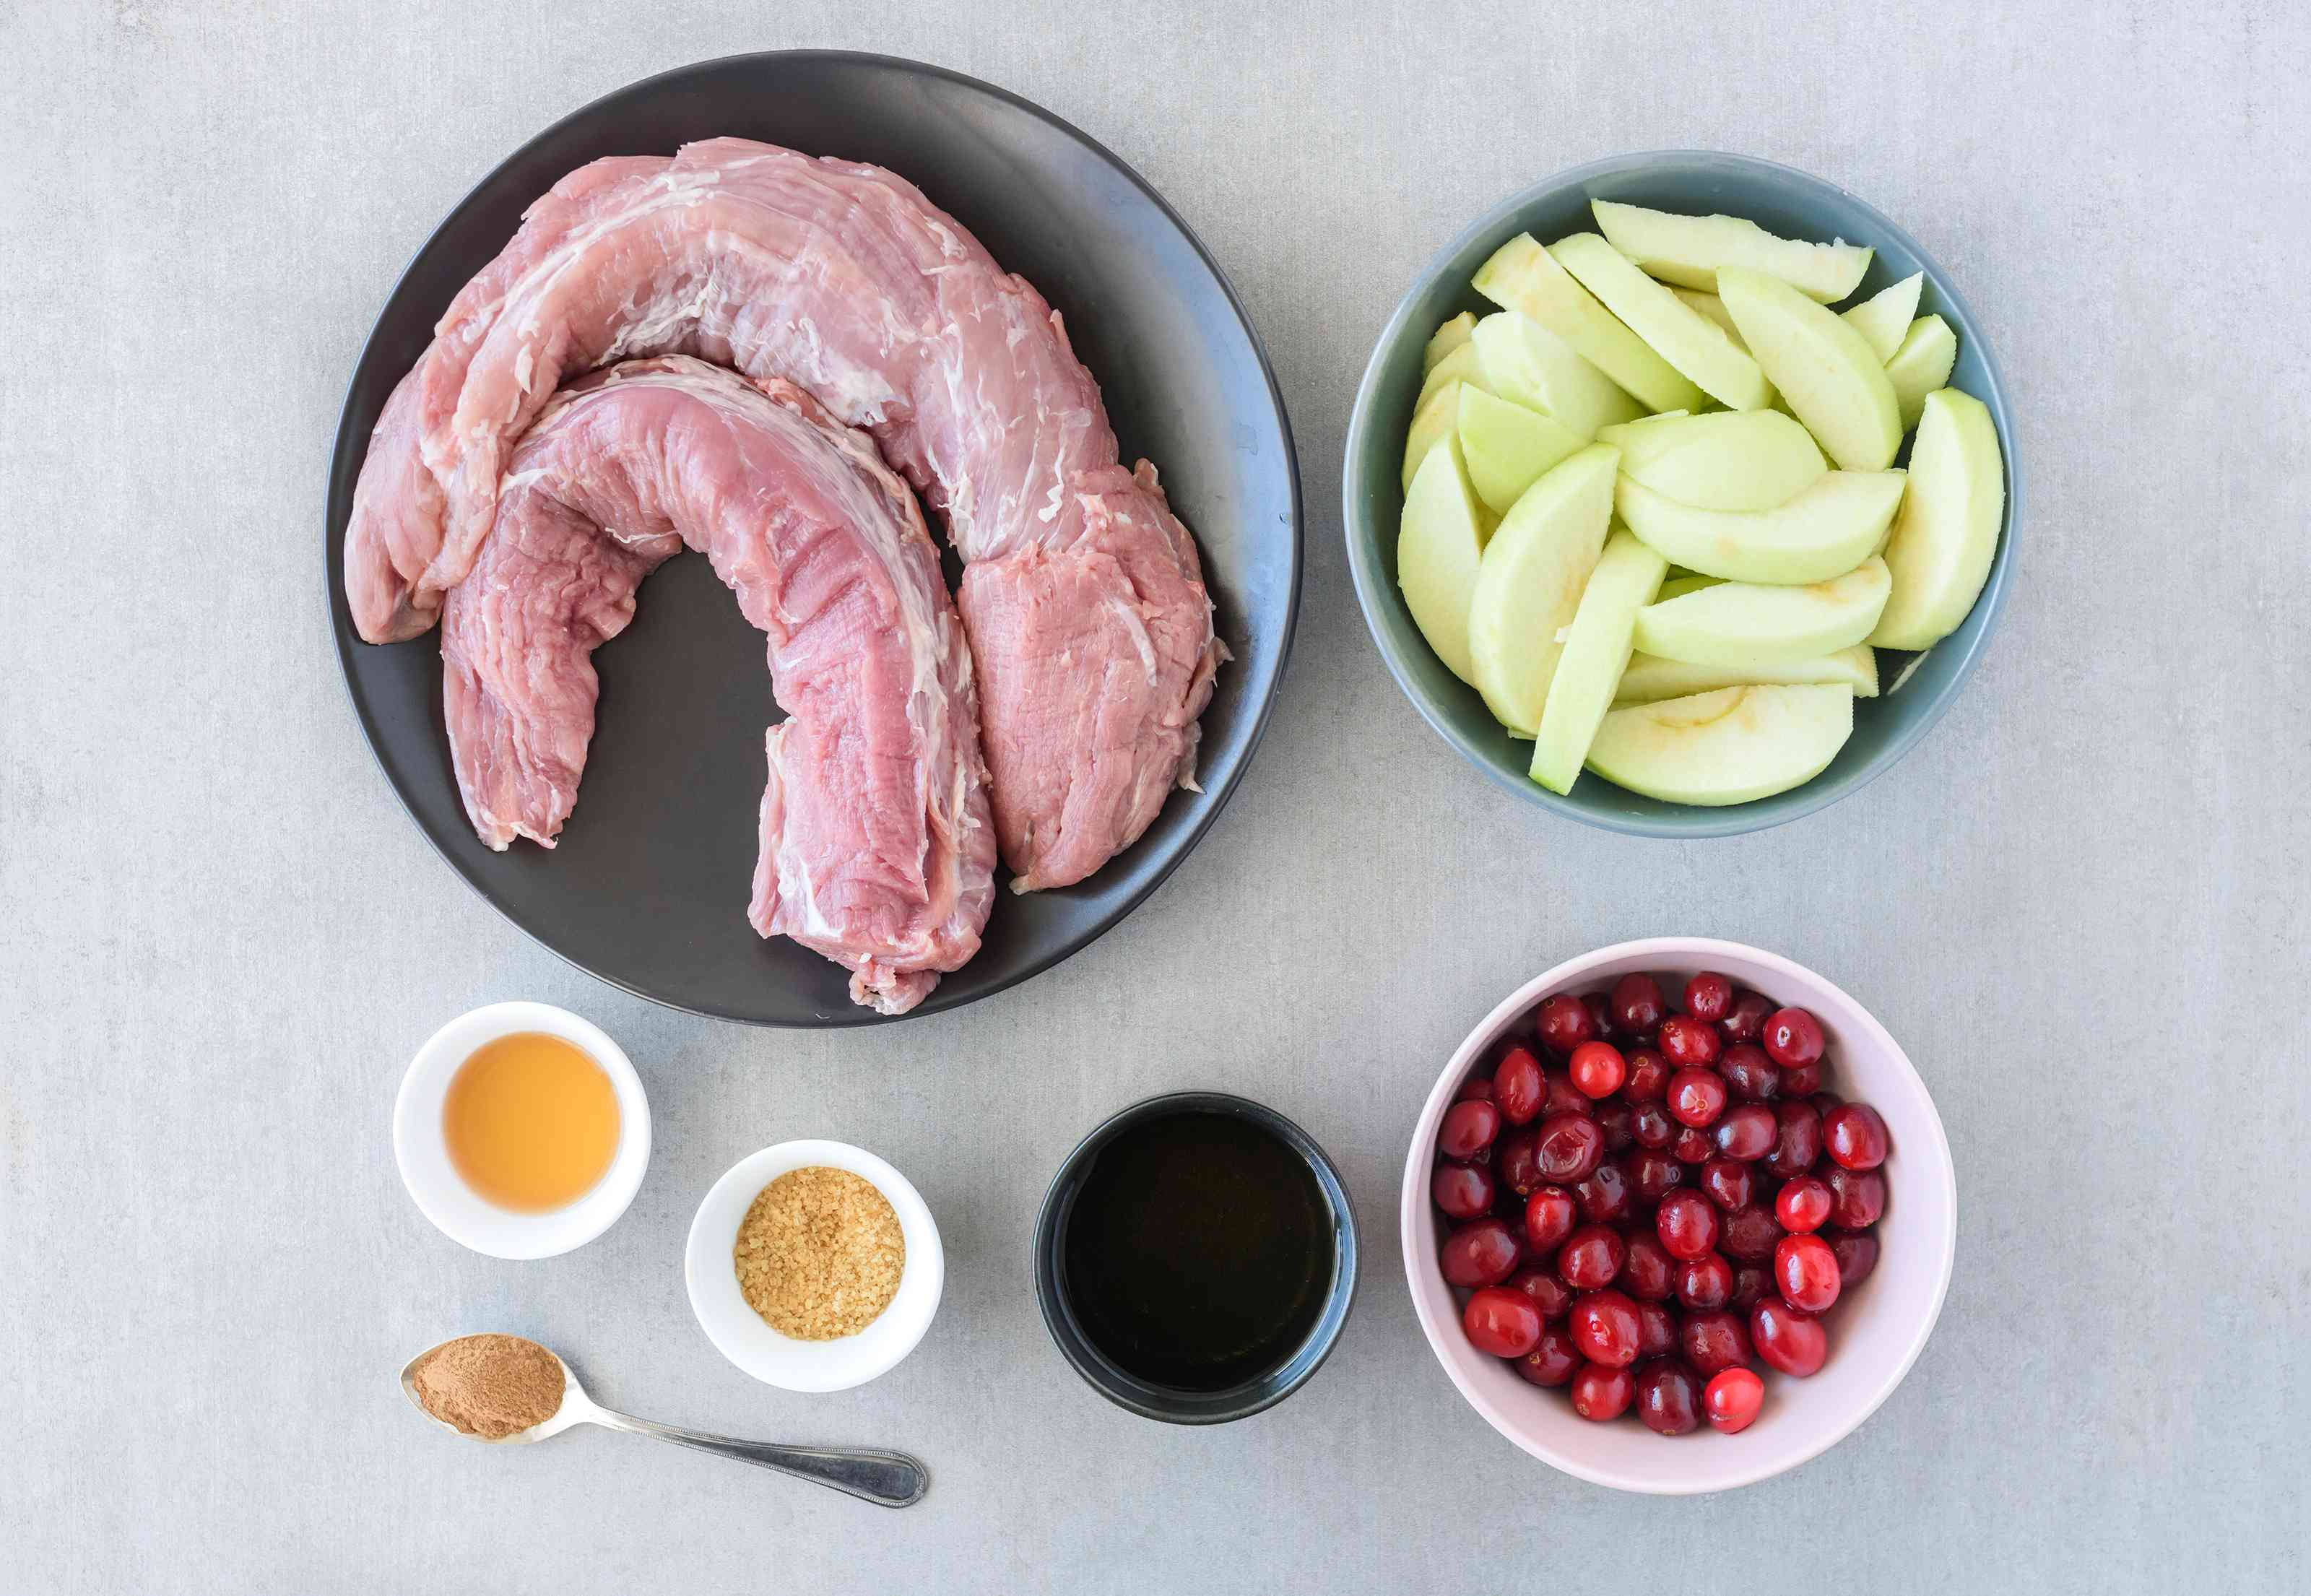 Ingredients for roast pork with apples